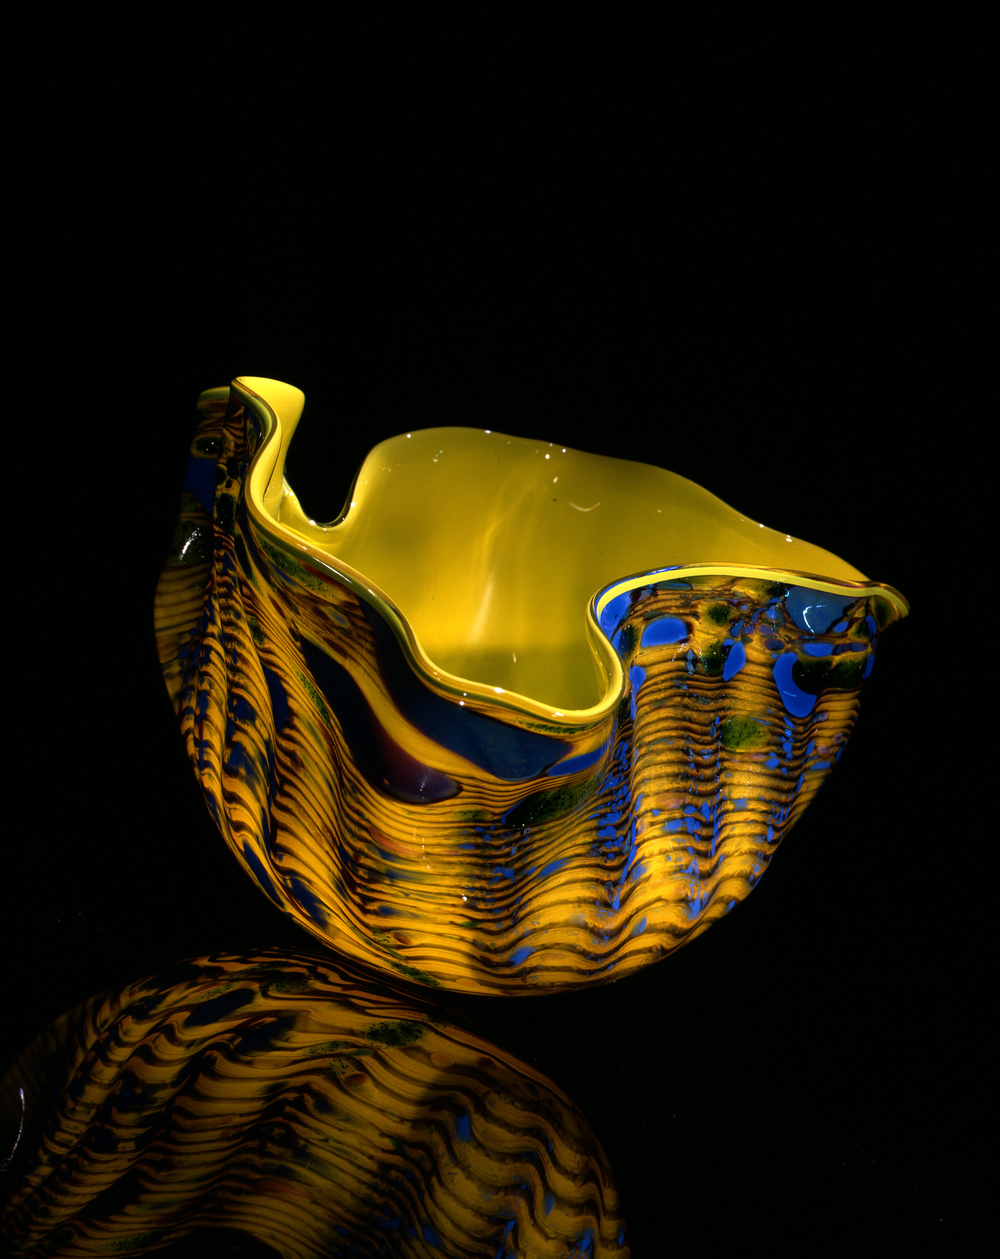 Dale Chihuly,  Citron Macchia with Oxblood and Sea Blue Jimmies  (1982, glass, 5 x 7 x 7 inches), DC.119